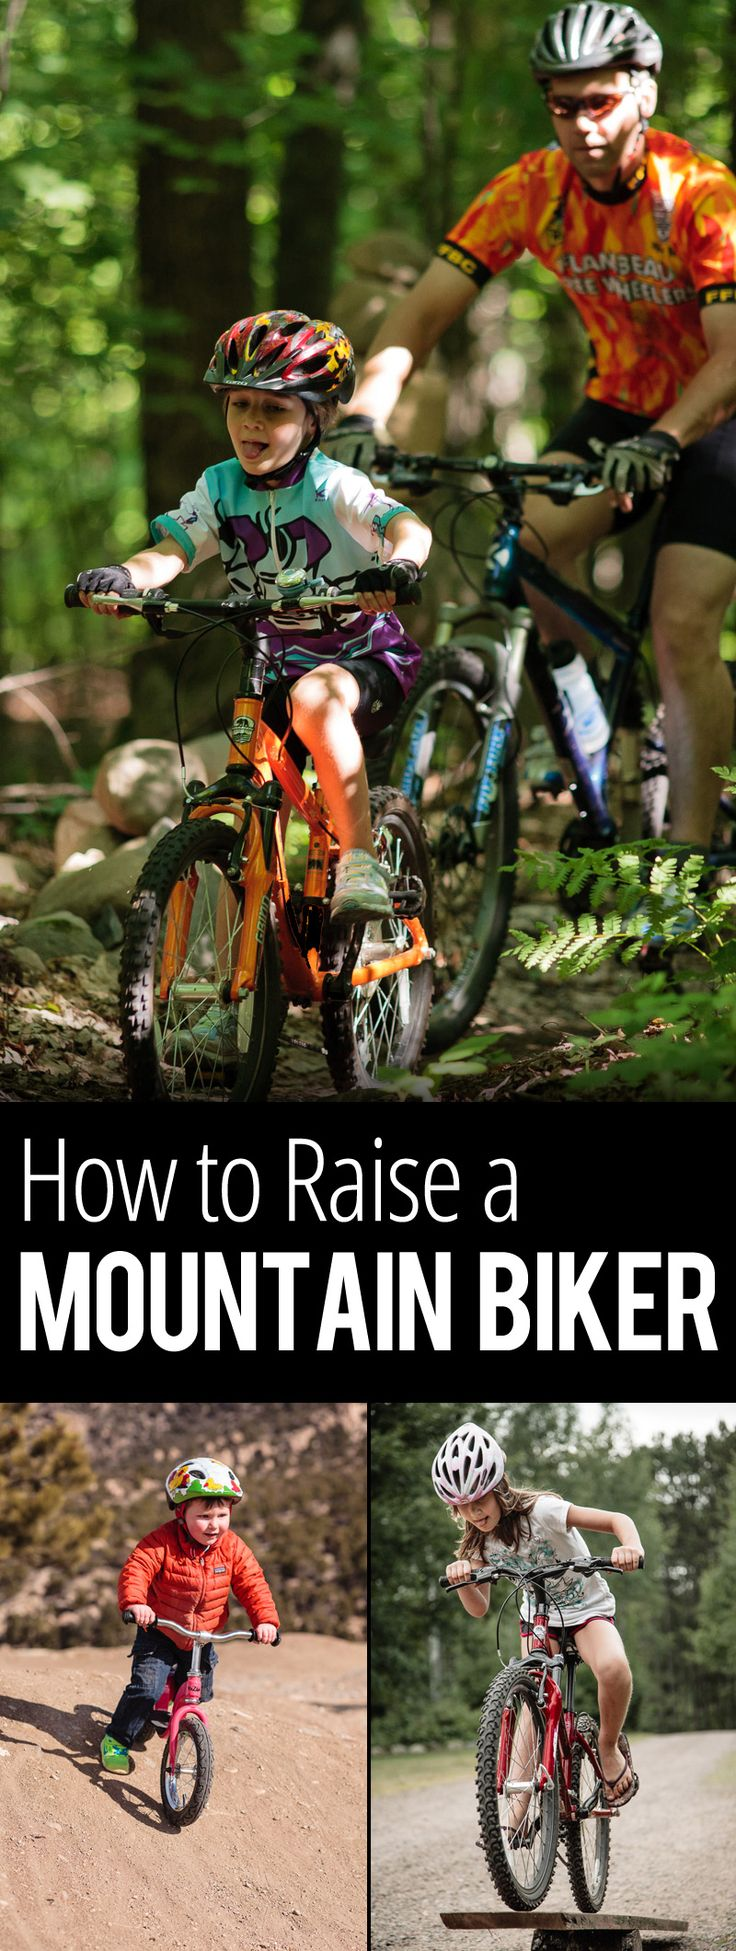 How to Raise A Mountain Biker | Singletracks Mountain Bike News